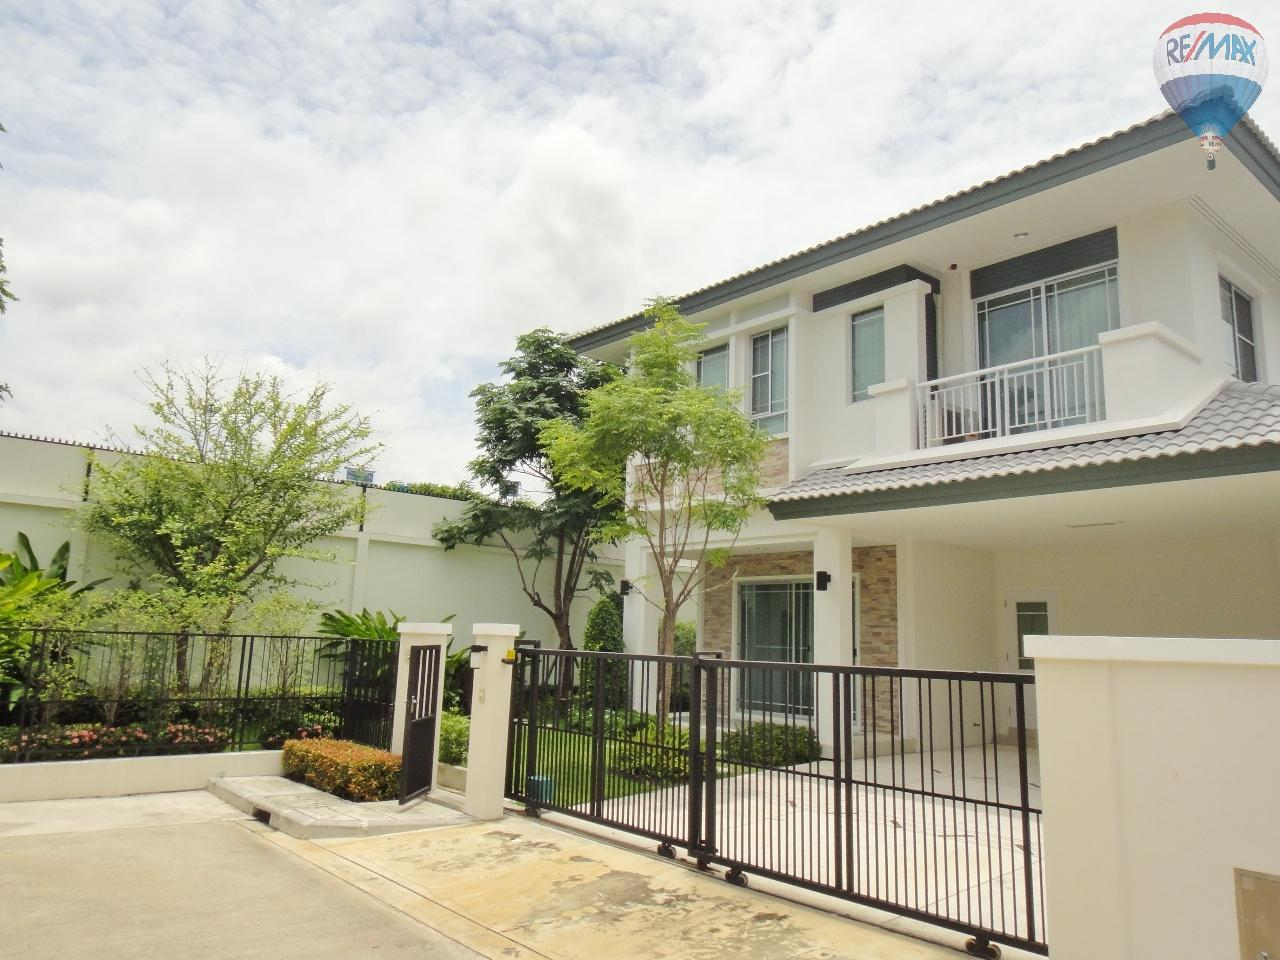 RE/MAX BestLife Agency's Nantawan Srinakarin Land and House for sale 3 bedroom 3 bathroom 64 sq.wah 168 sqm. 1